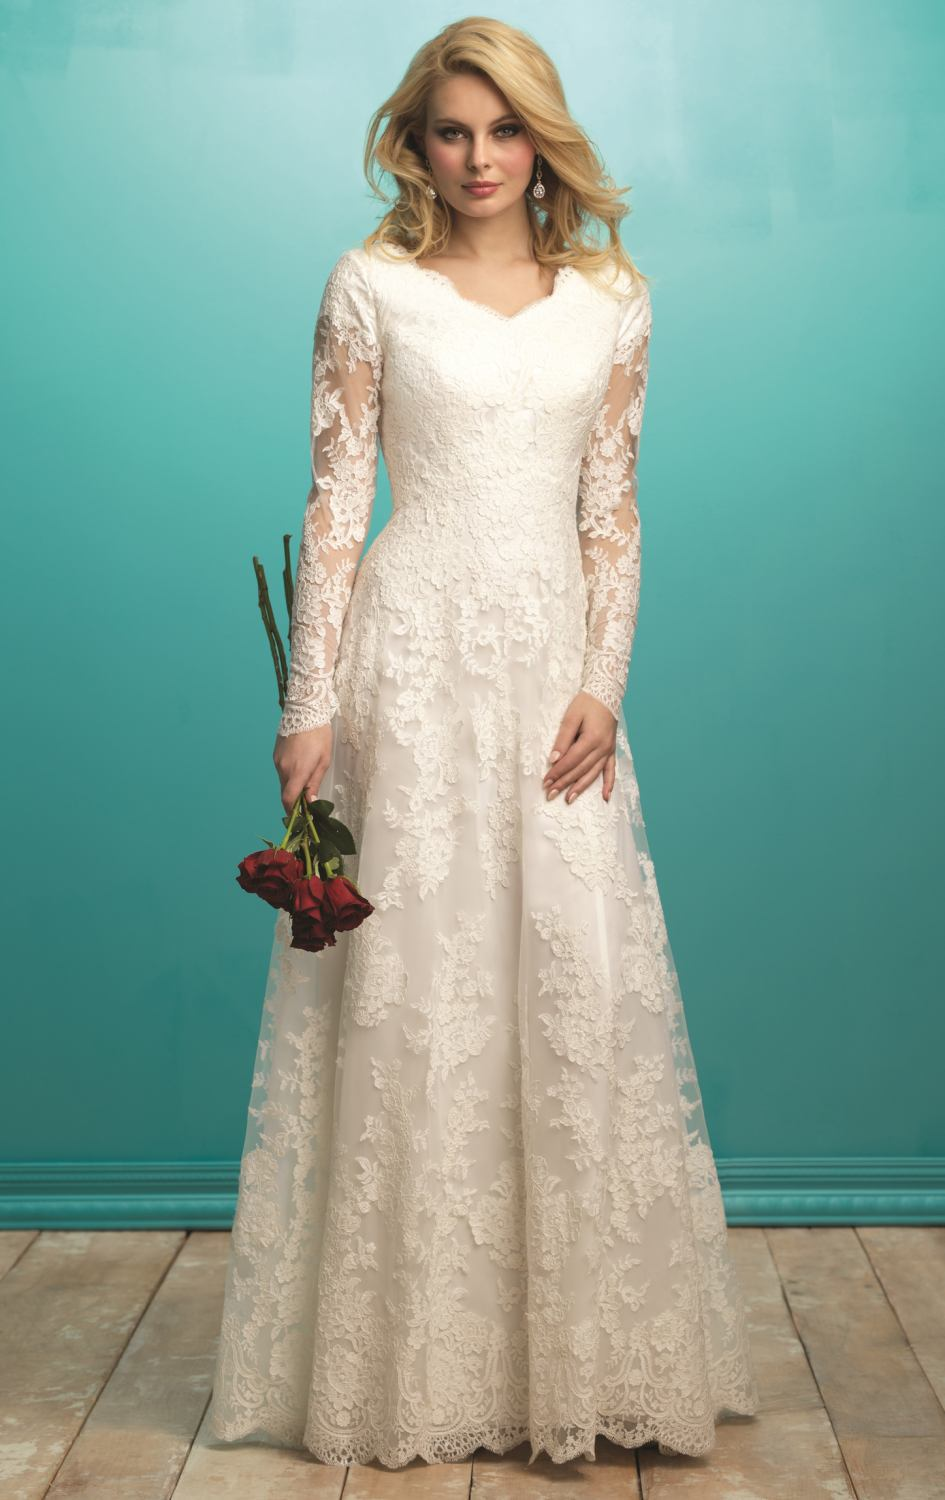 Women New Design 2015 Lace Full Sleeved Wedding Gown Long Tail A ...